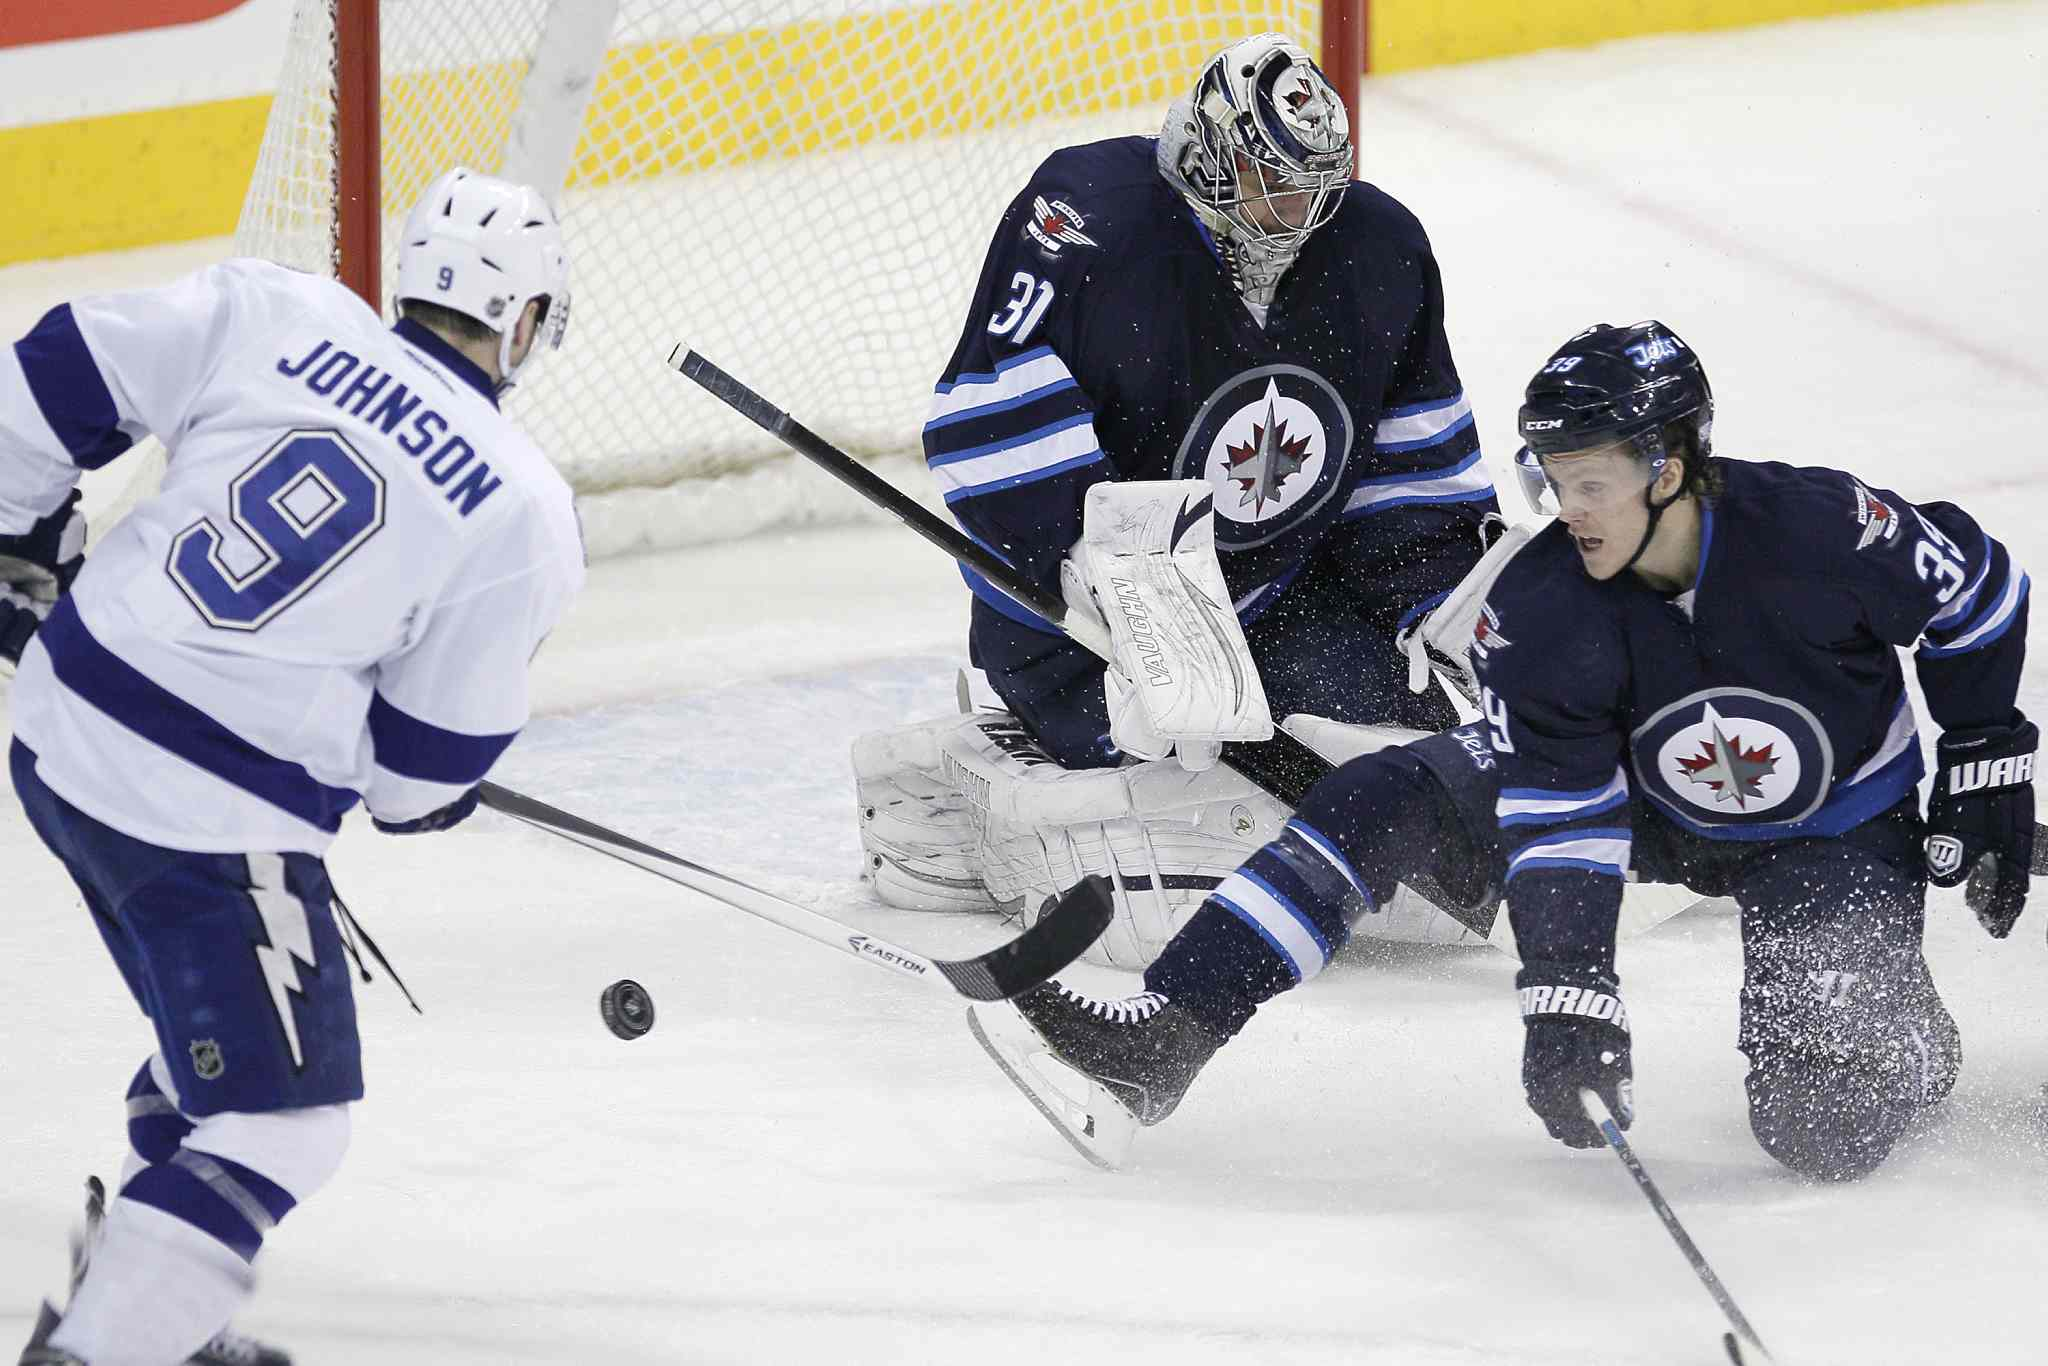 Winnipeg Jets' Tobias Enstrom (39) blocks the first-period shot by Tampa Bay Lightning's Tyler Johnson (9) in front of Jets' goaltender Ondrej Pavelec (31).